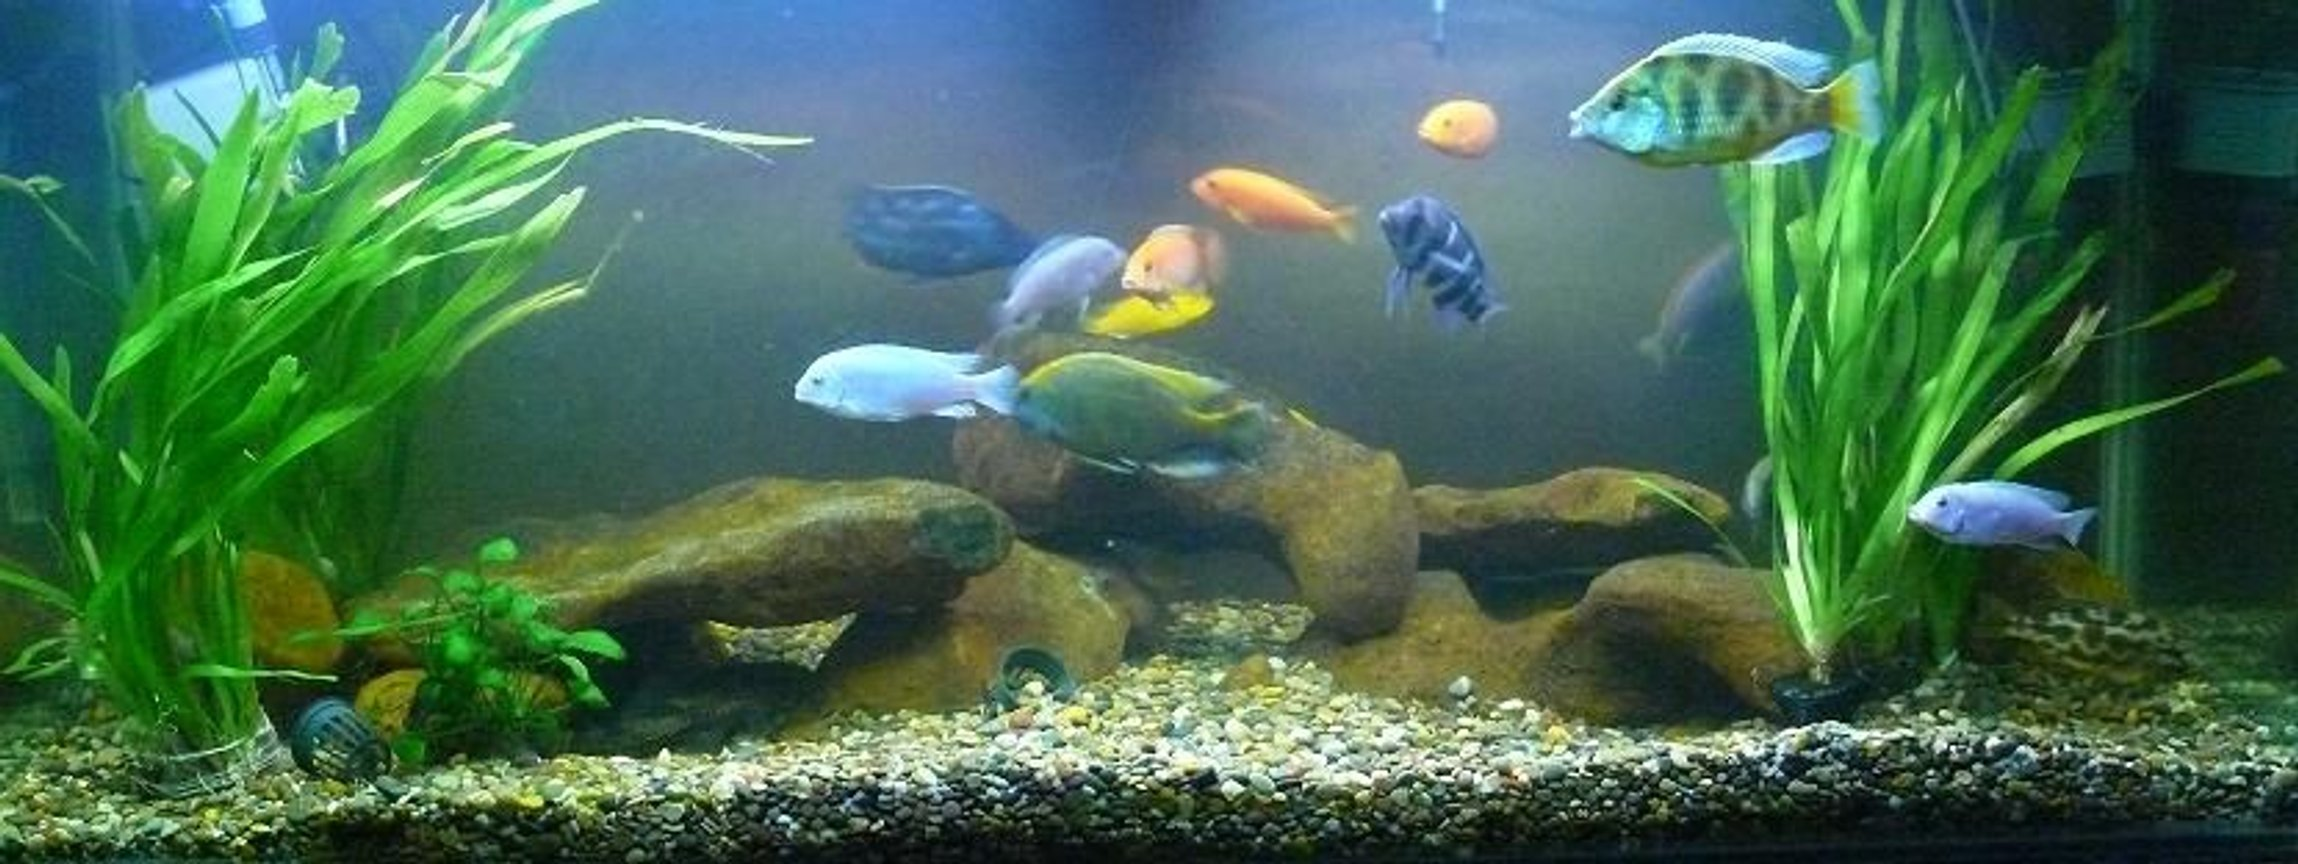 125 gallons freshwater fish tank (mostly fish and non-living decorations) - My 125G Malawi tank